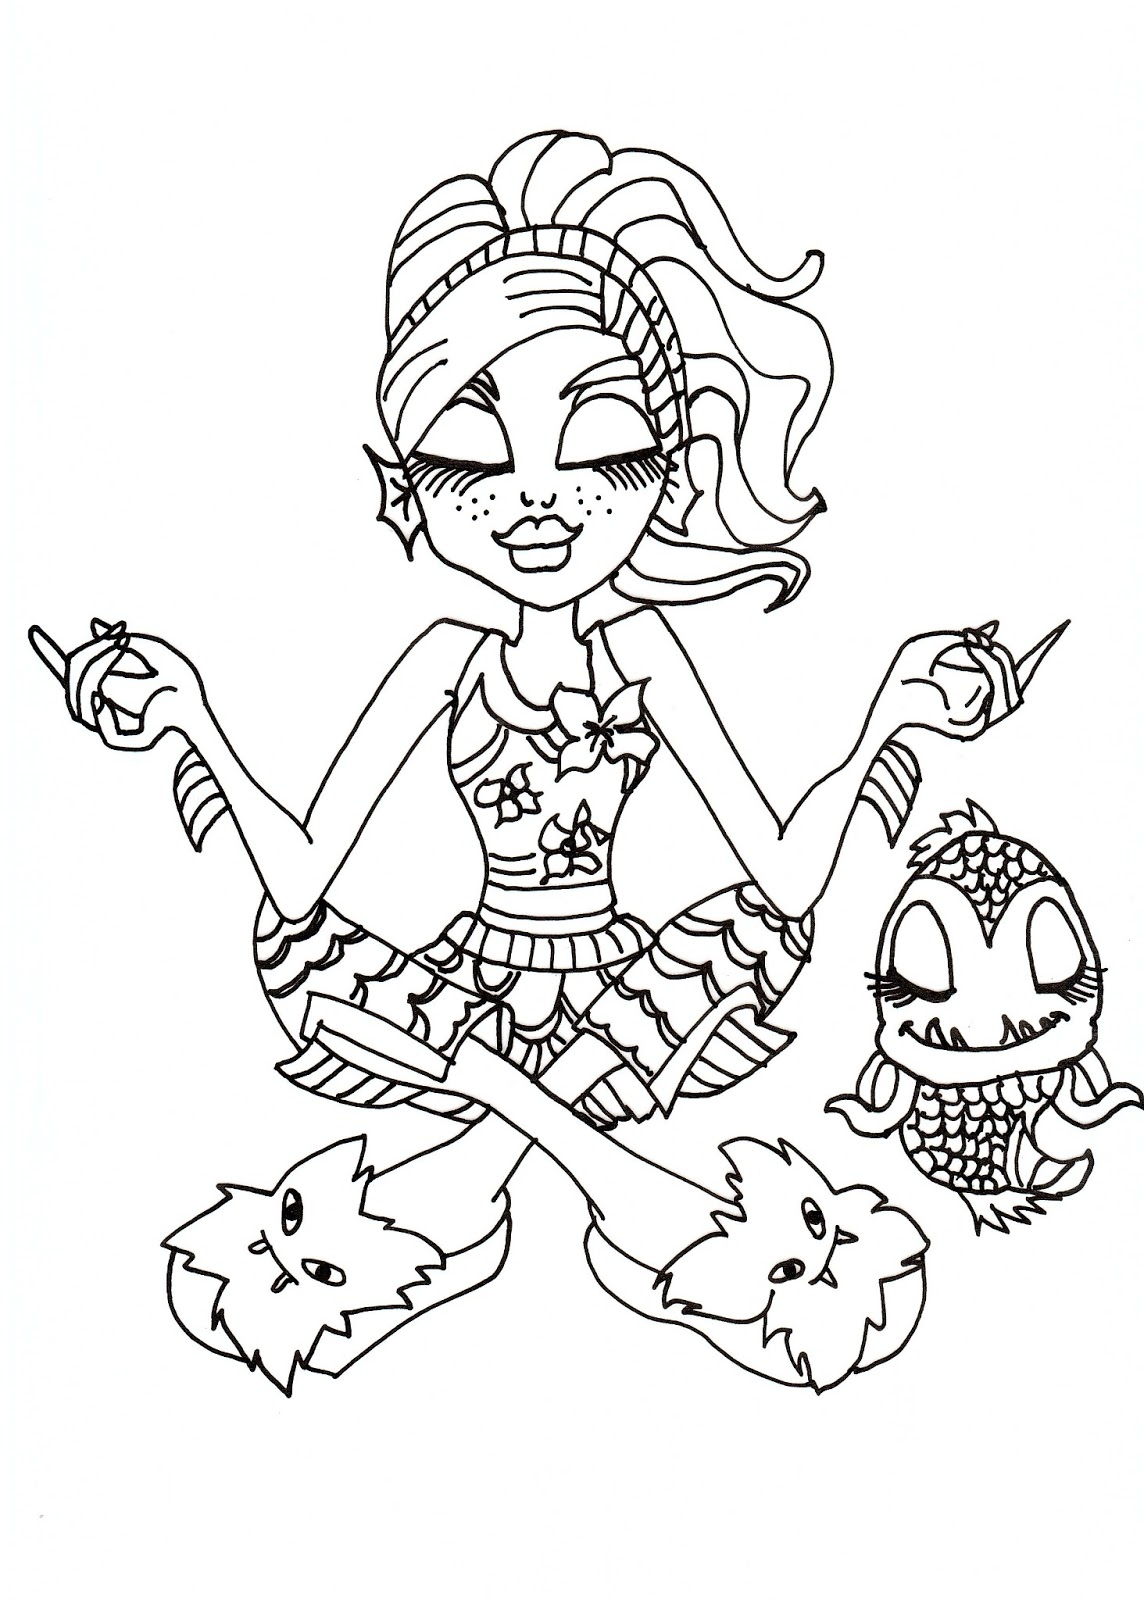 CLICK HERE TO PRINT Free Printable Monster High